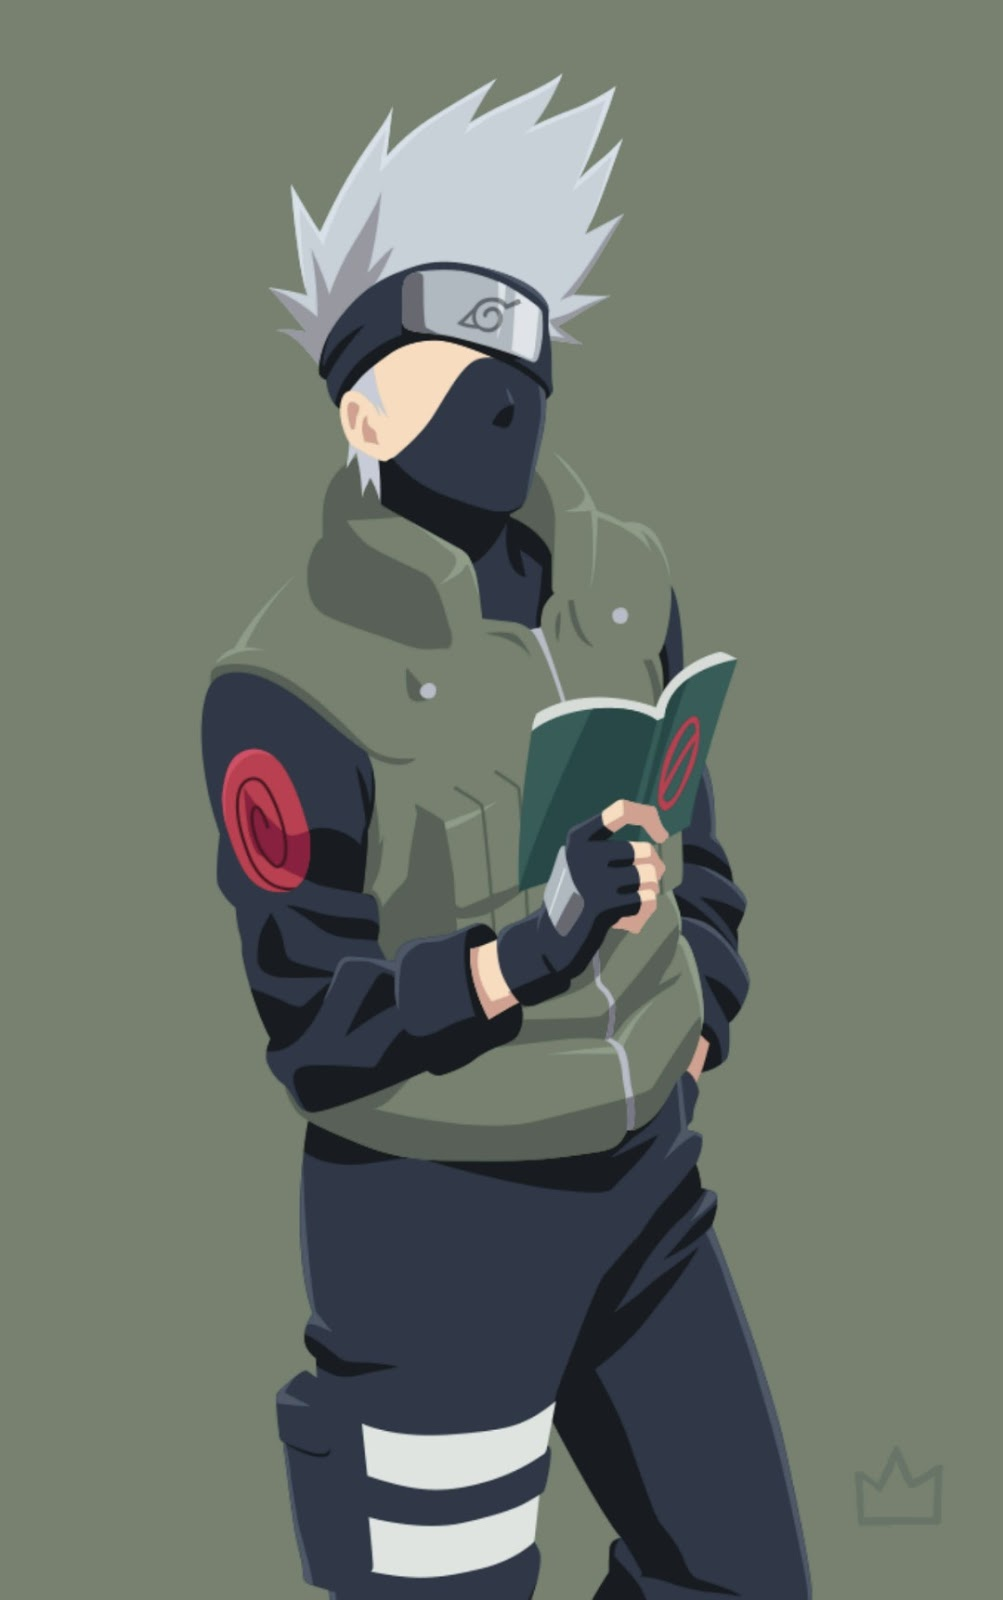 5 Download Wallpaper hatake kakashi vector untuk Android dan Whatsapp